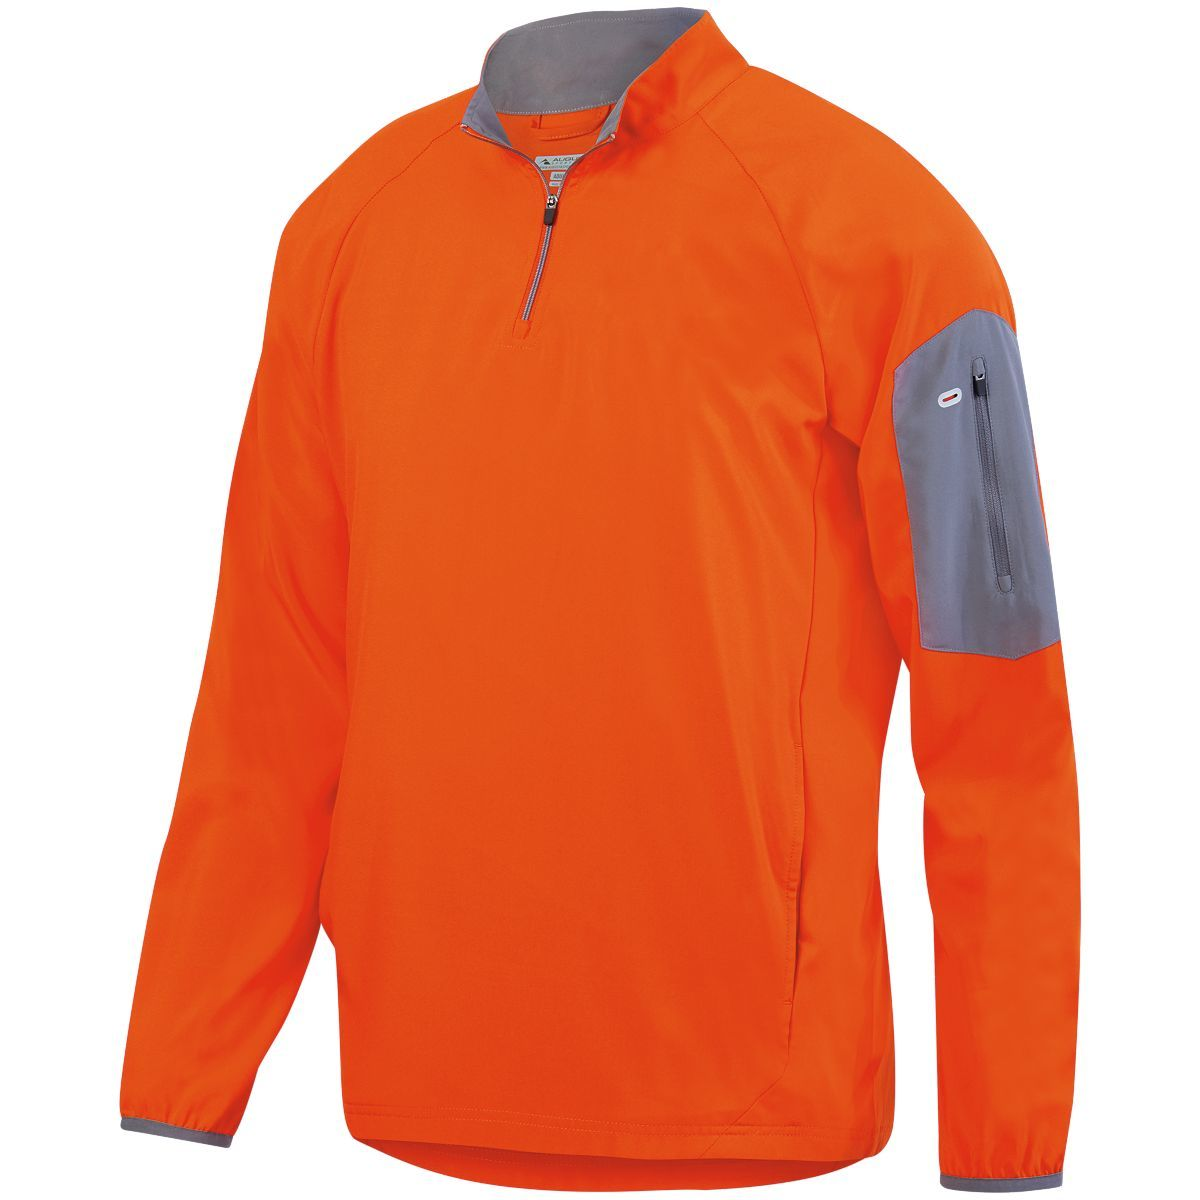 Preeminent Half-Zip Pullover - ORANGE/GRAPHITE